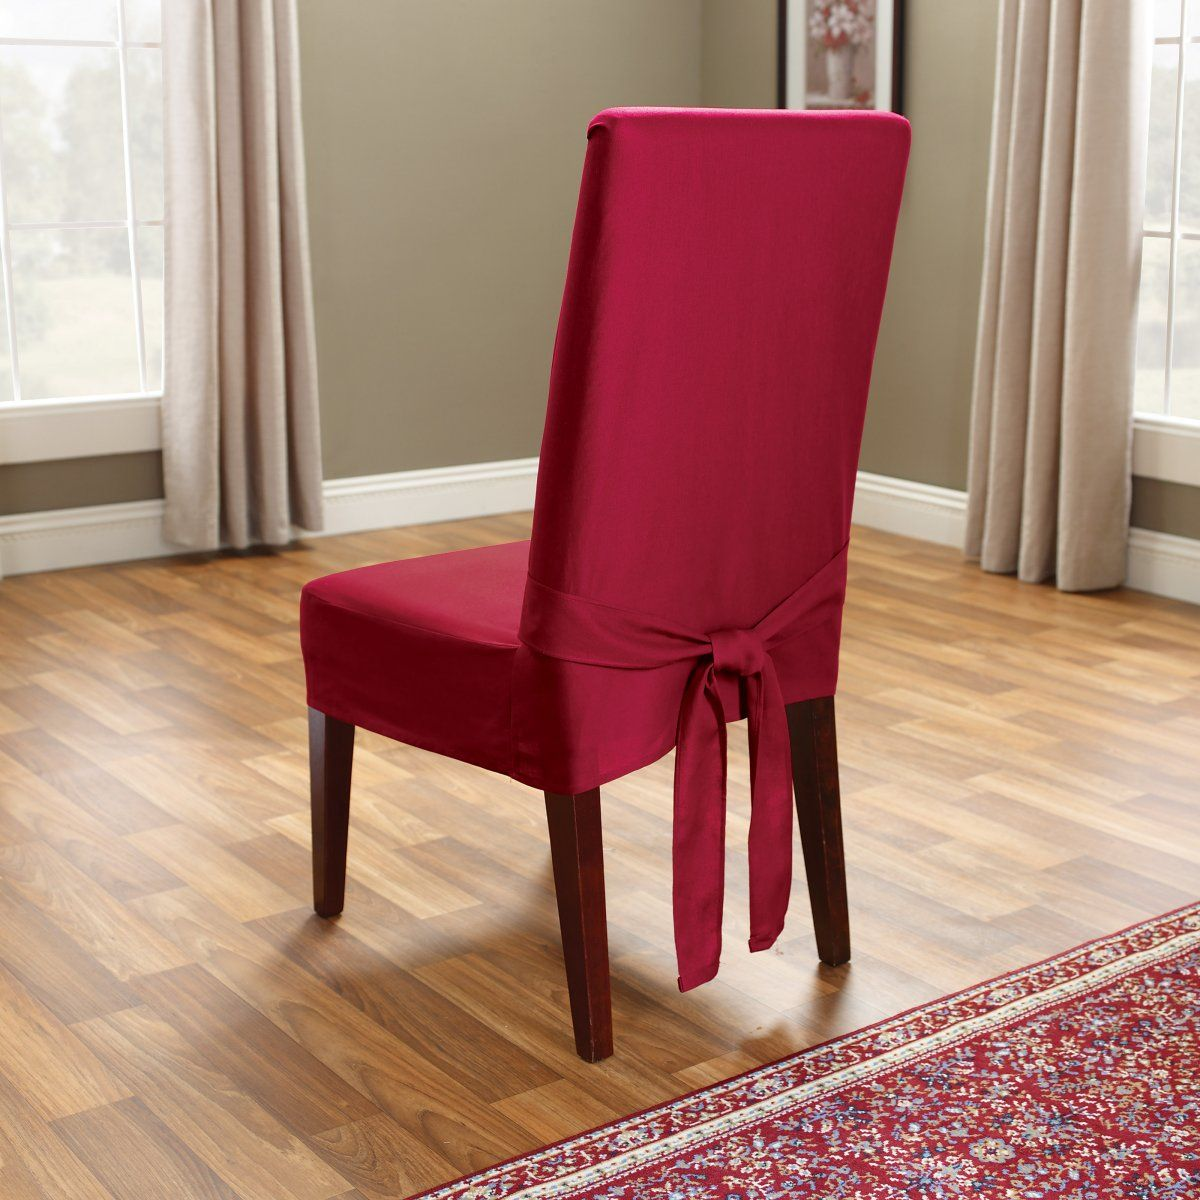 Romantic Red Slipcovers For Dining Room Chairs With Admirable Wooden Floor  And Red Rug Part 5